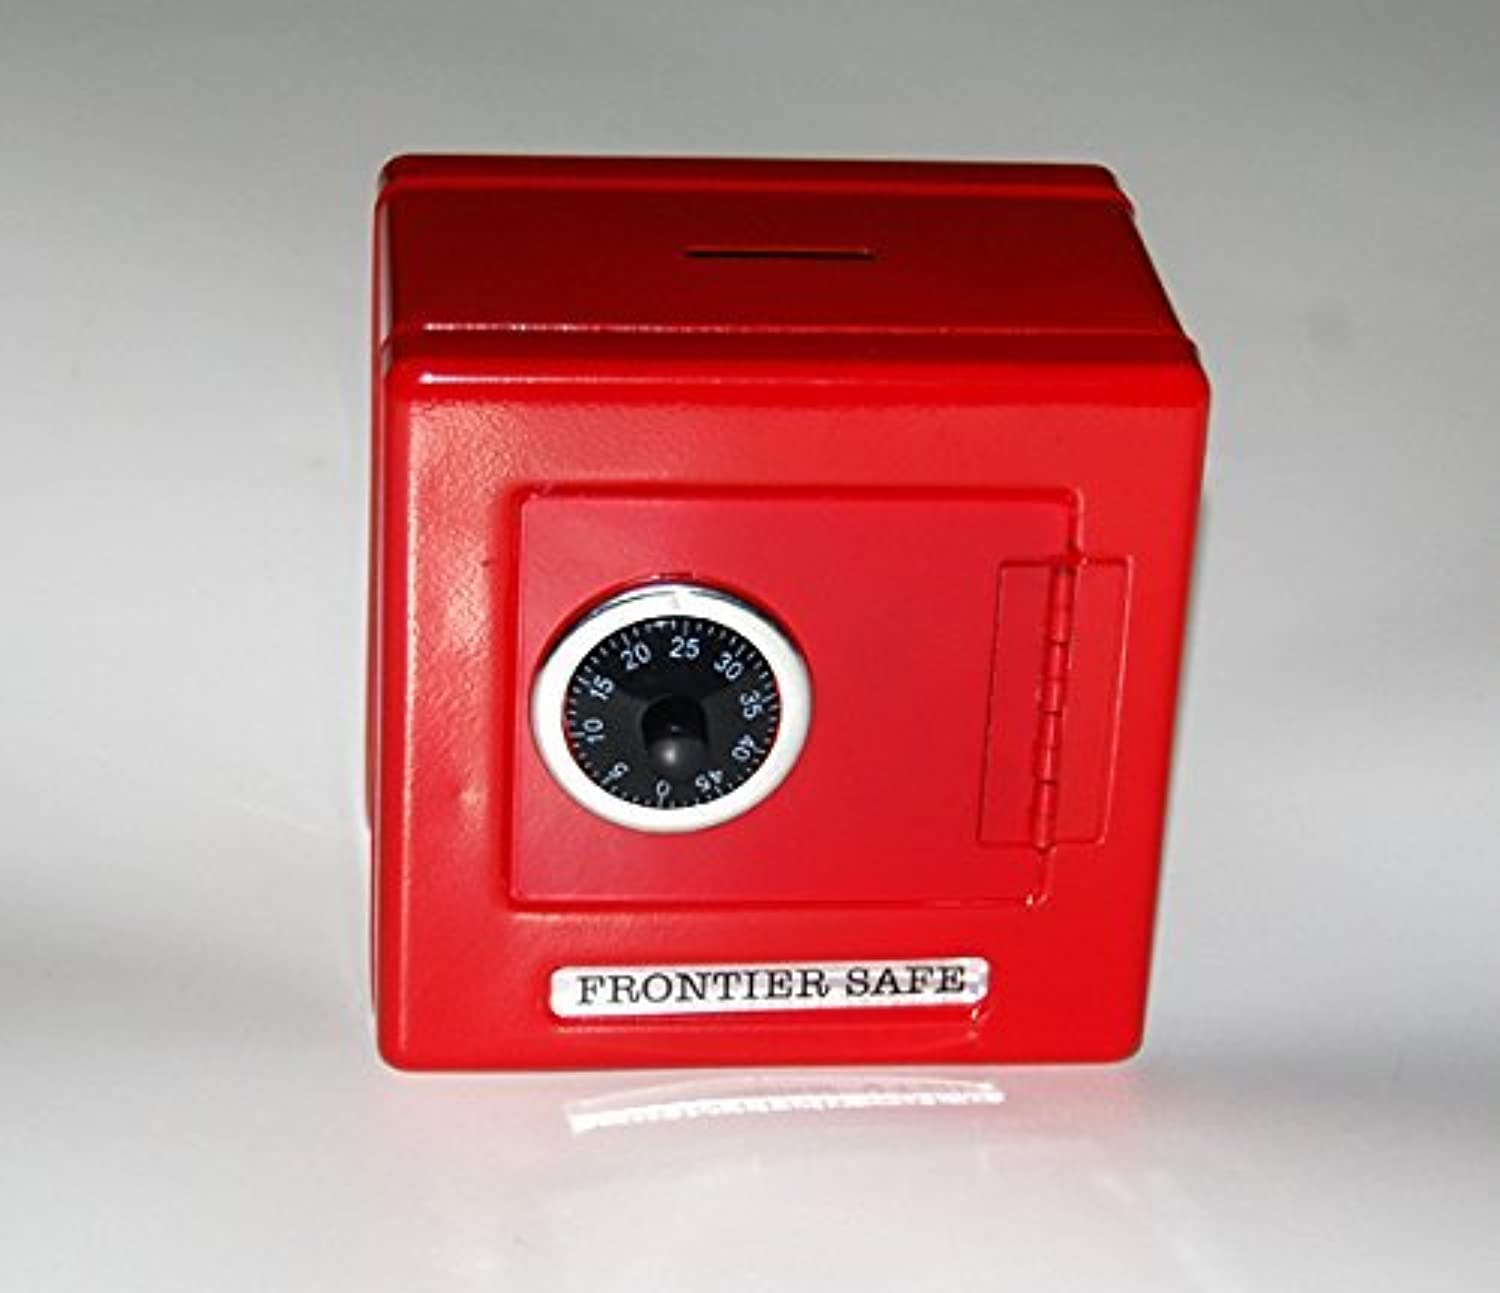 Frontier Combination Metal Coin Safe (RED) [Toy]